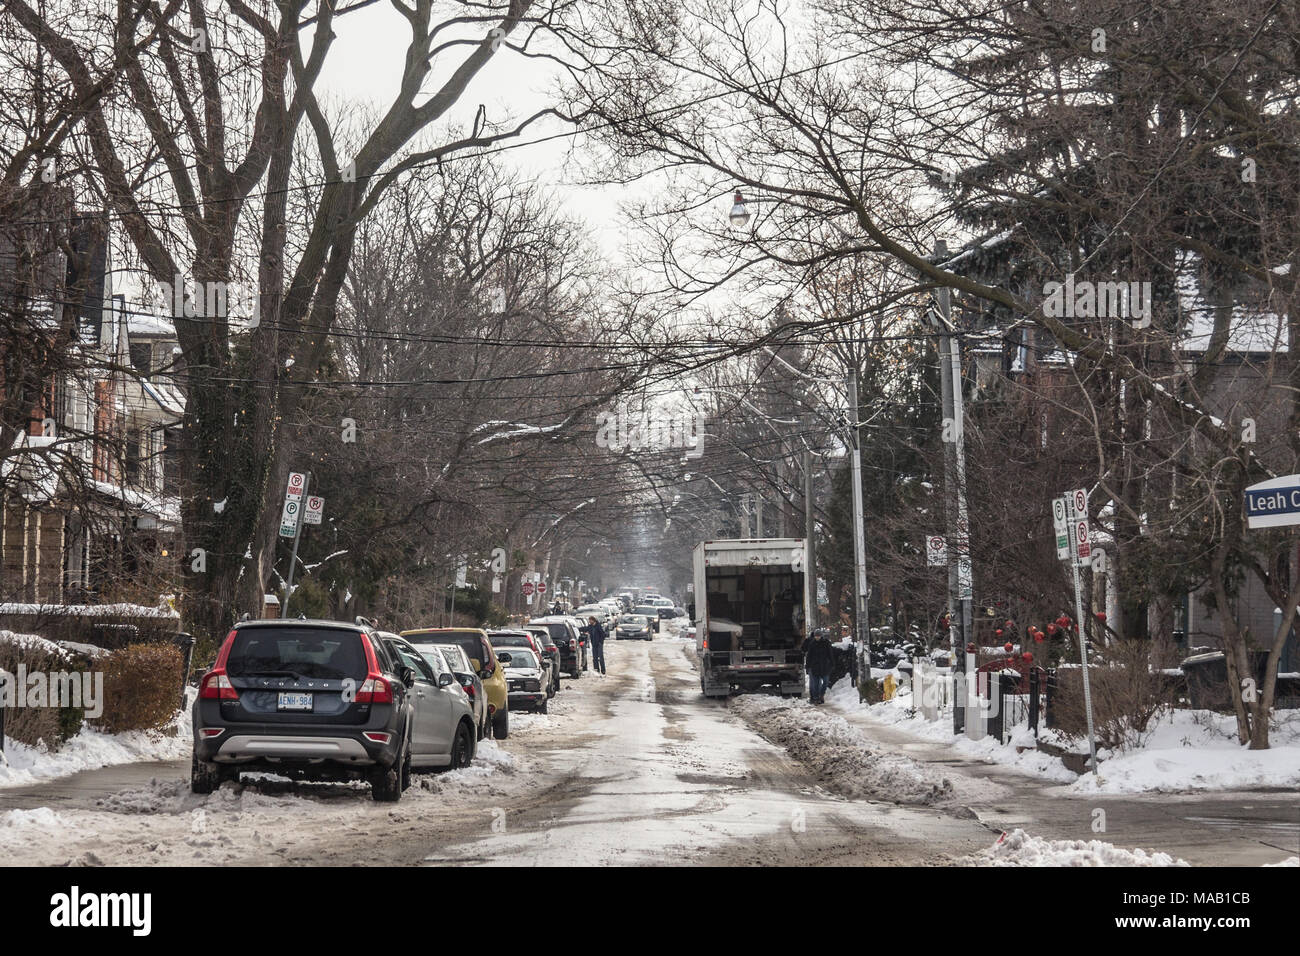 TORONTO, CANADA - DECEMBER 21, 2016:Typical North American suburban street in the suburbs of Toronto, Ontario, during a snowy afternoon, cars parked n - Stock Image